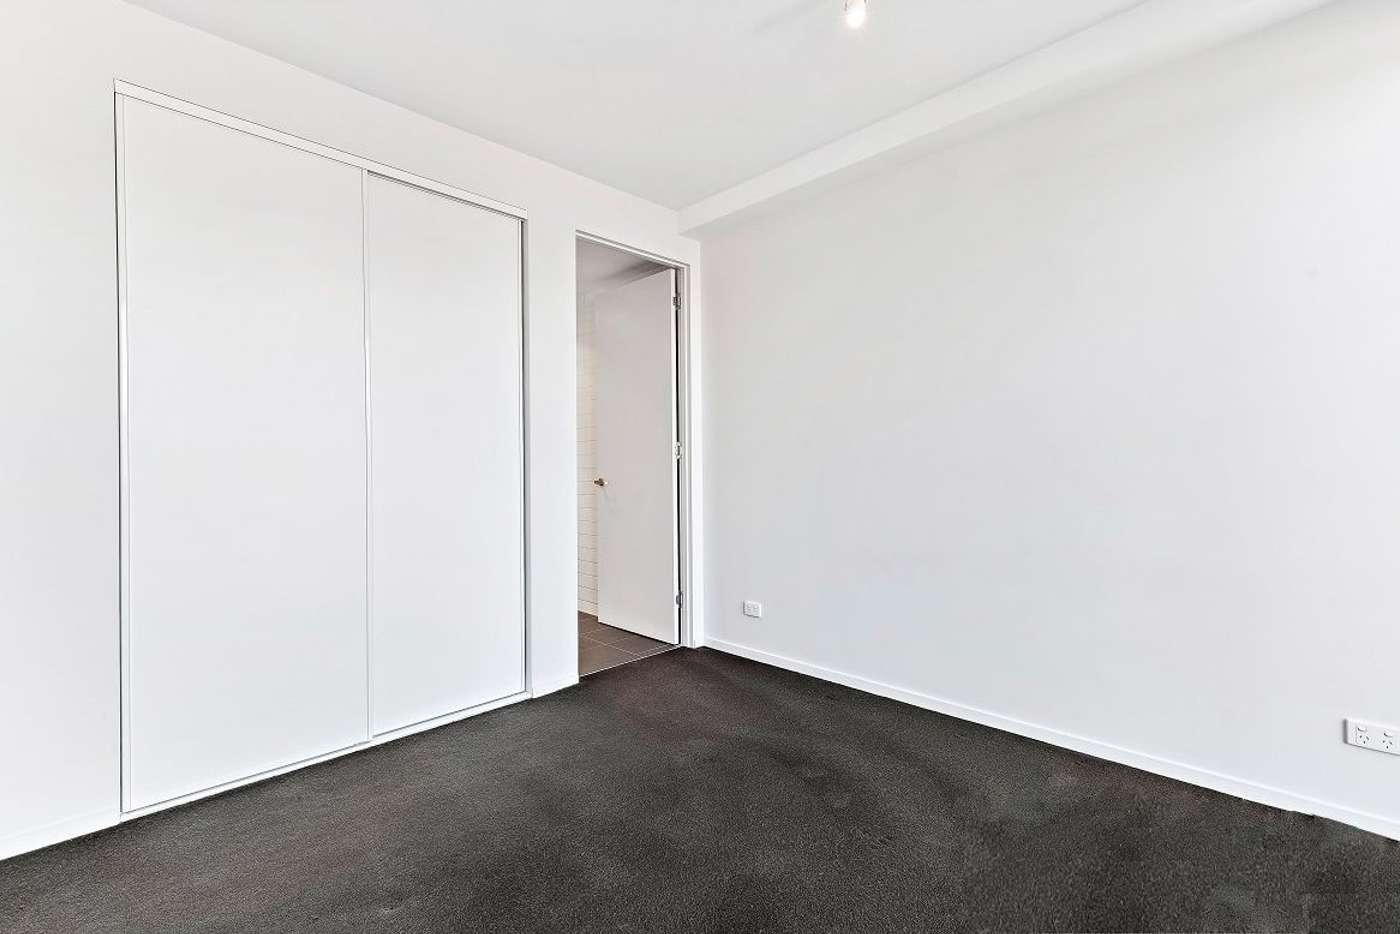 Seventh view of Homely apartment listing, 204/8-38 Percy Street, Brunswick VIC 3056